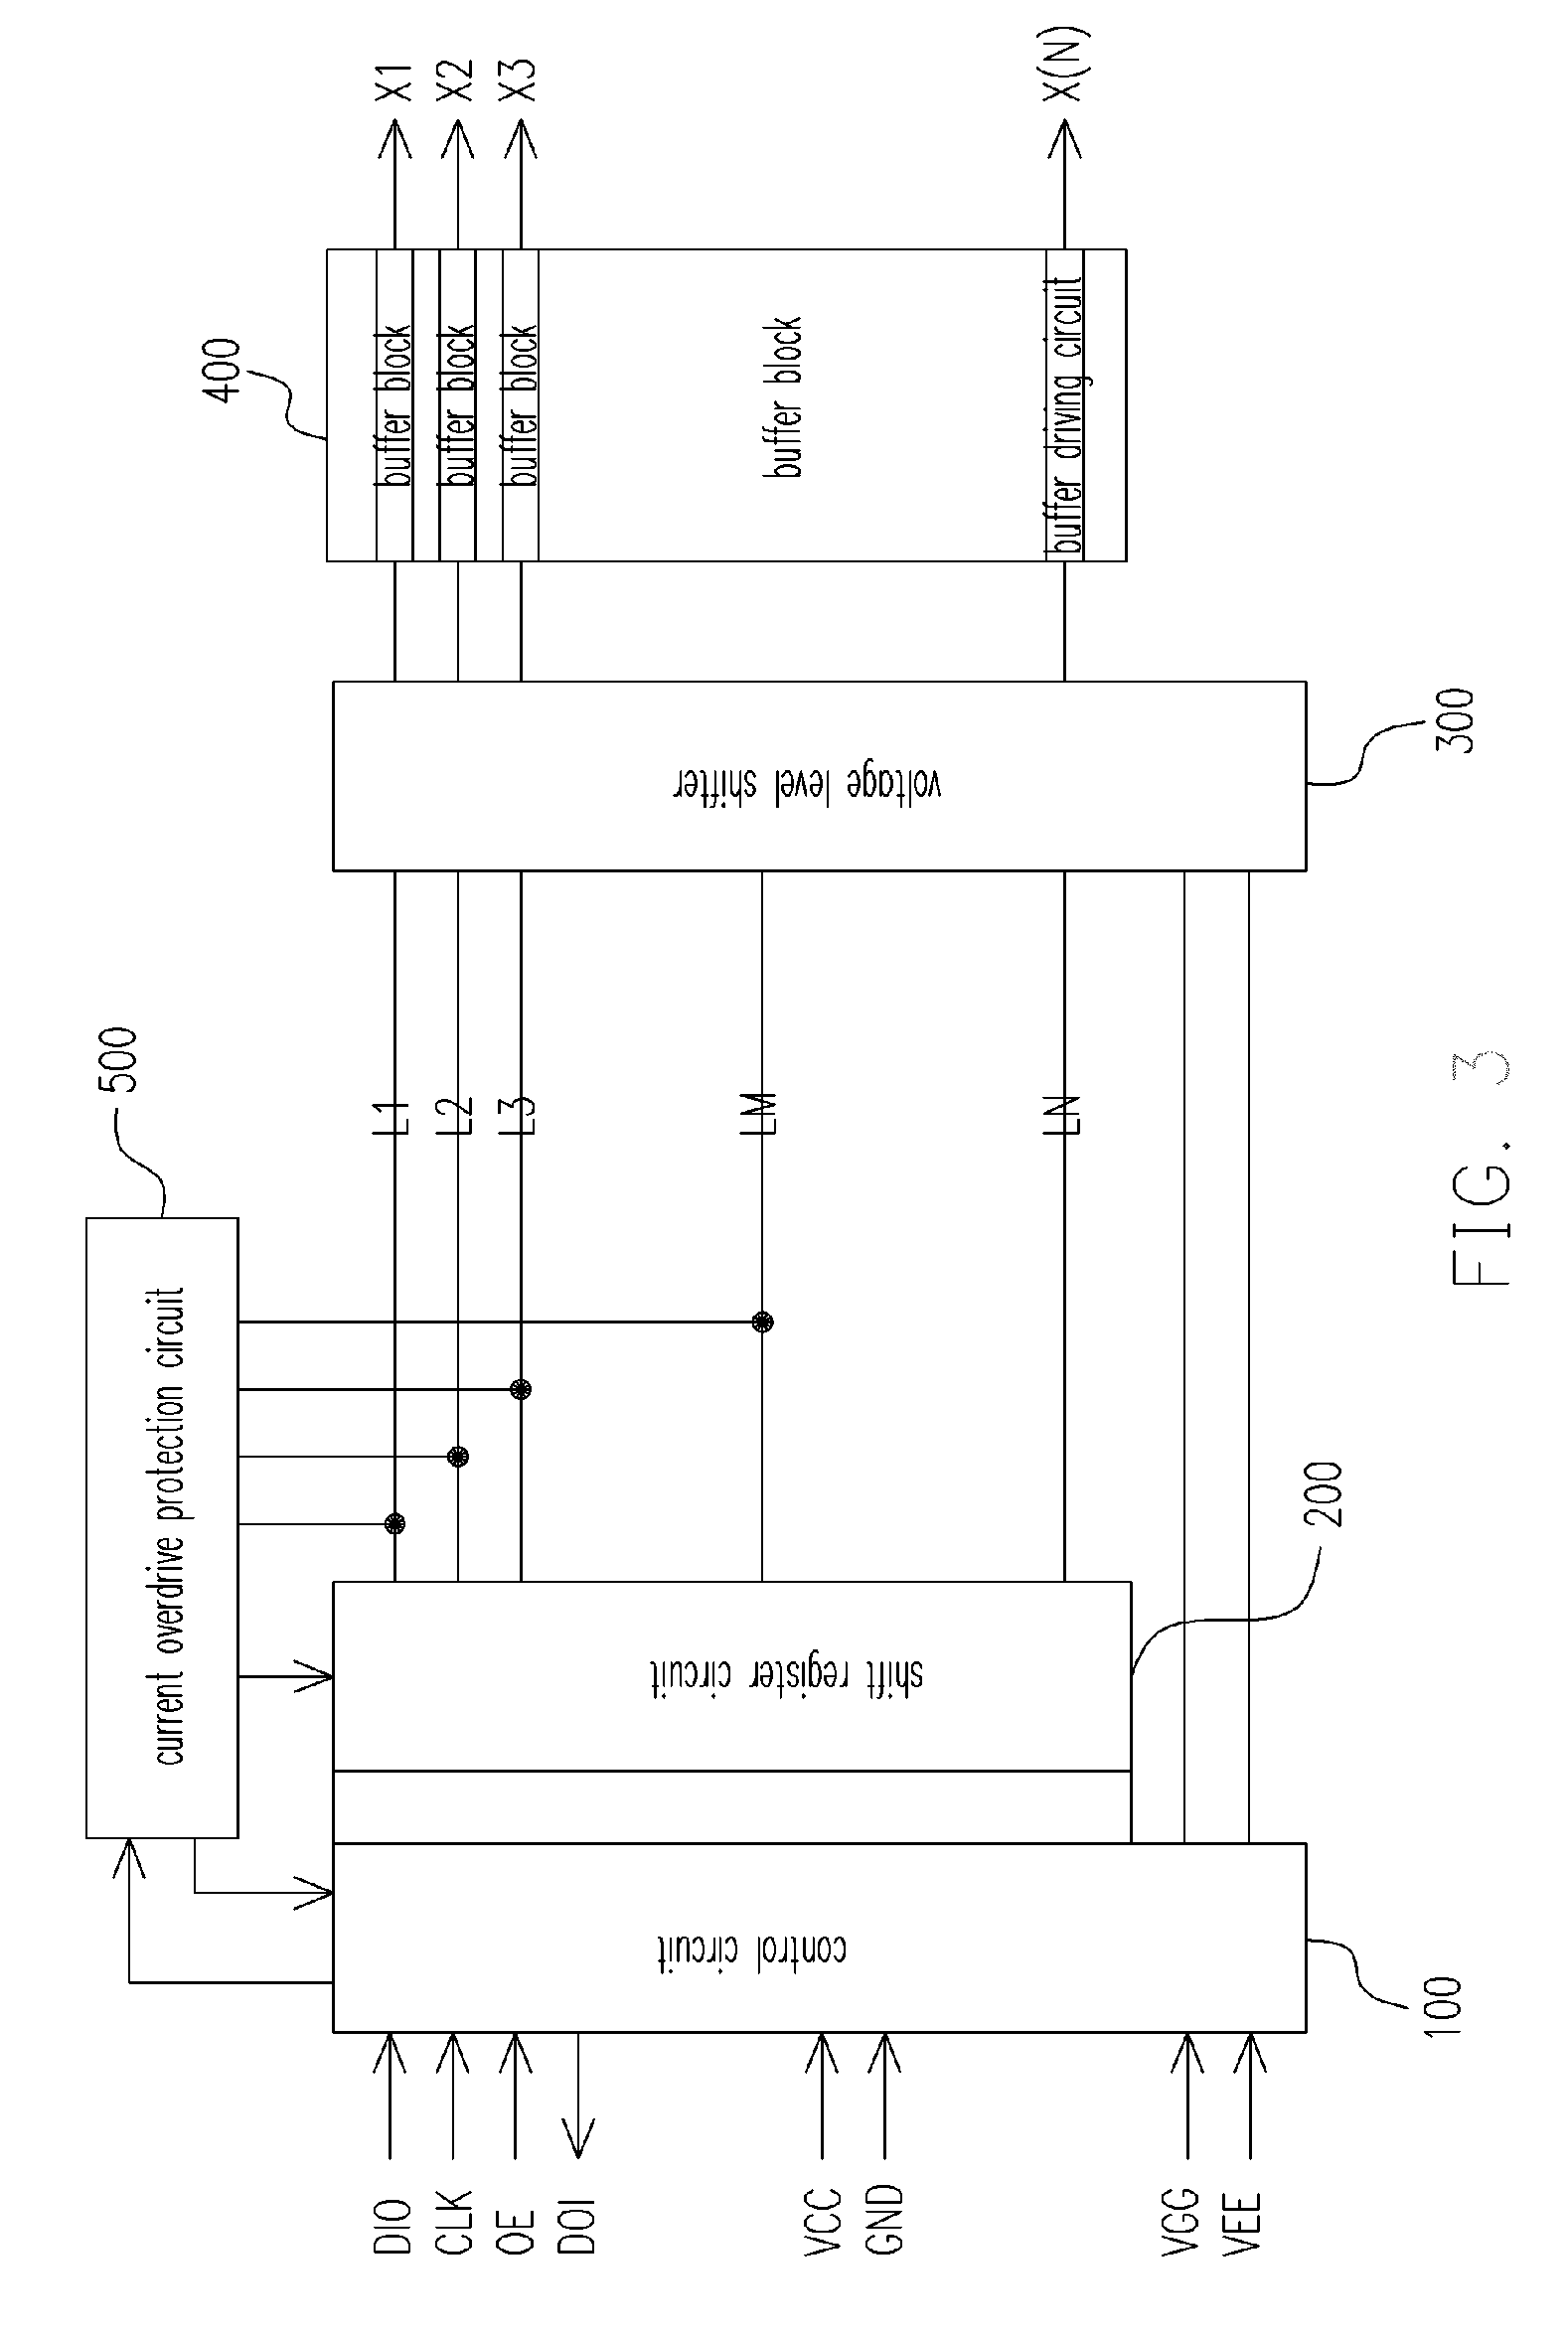 Brevet Us20060132475 Gate Driving Device With Current Overdrive Buffer Circuit Schematic Diagram Patent Drawing